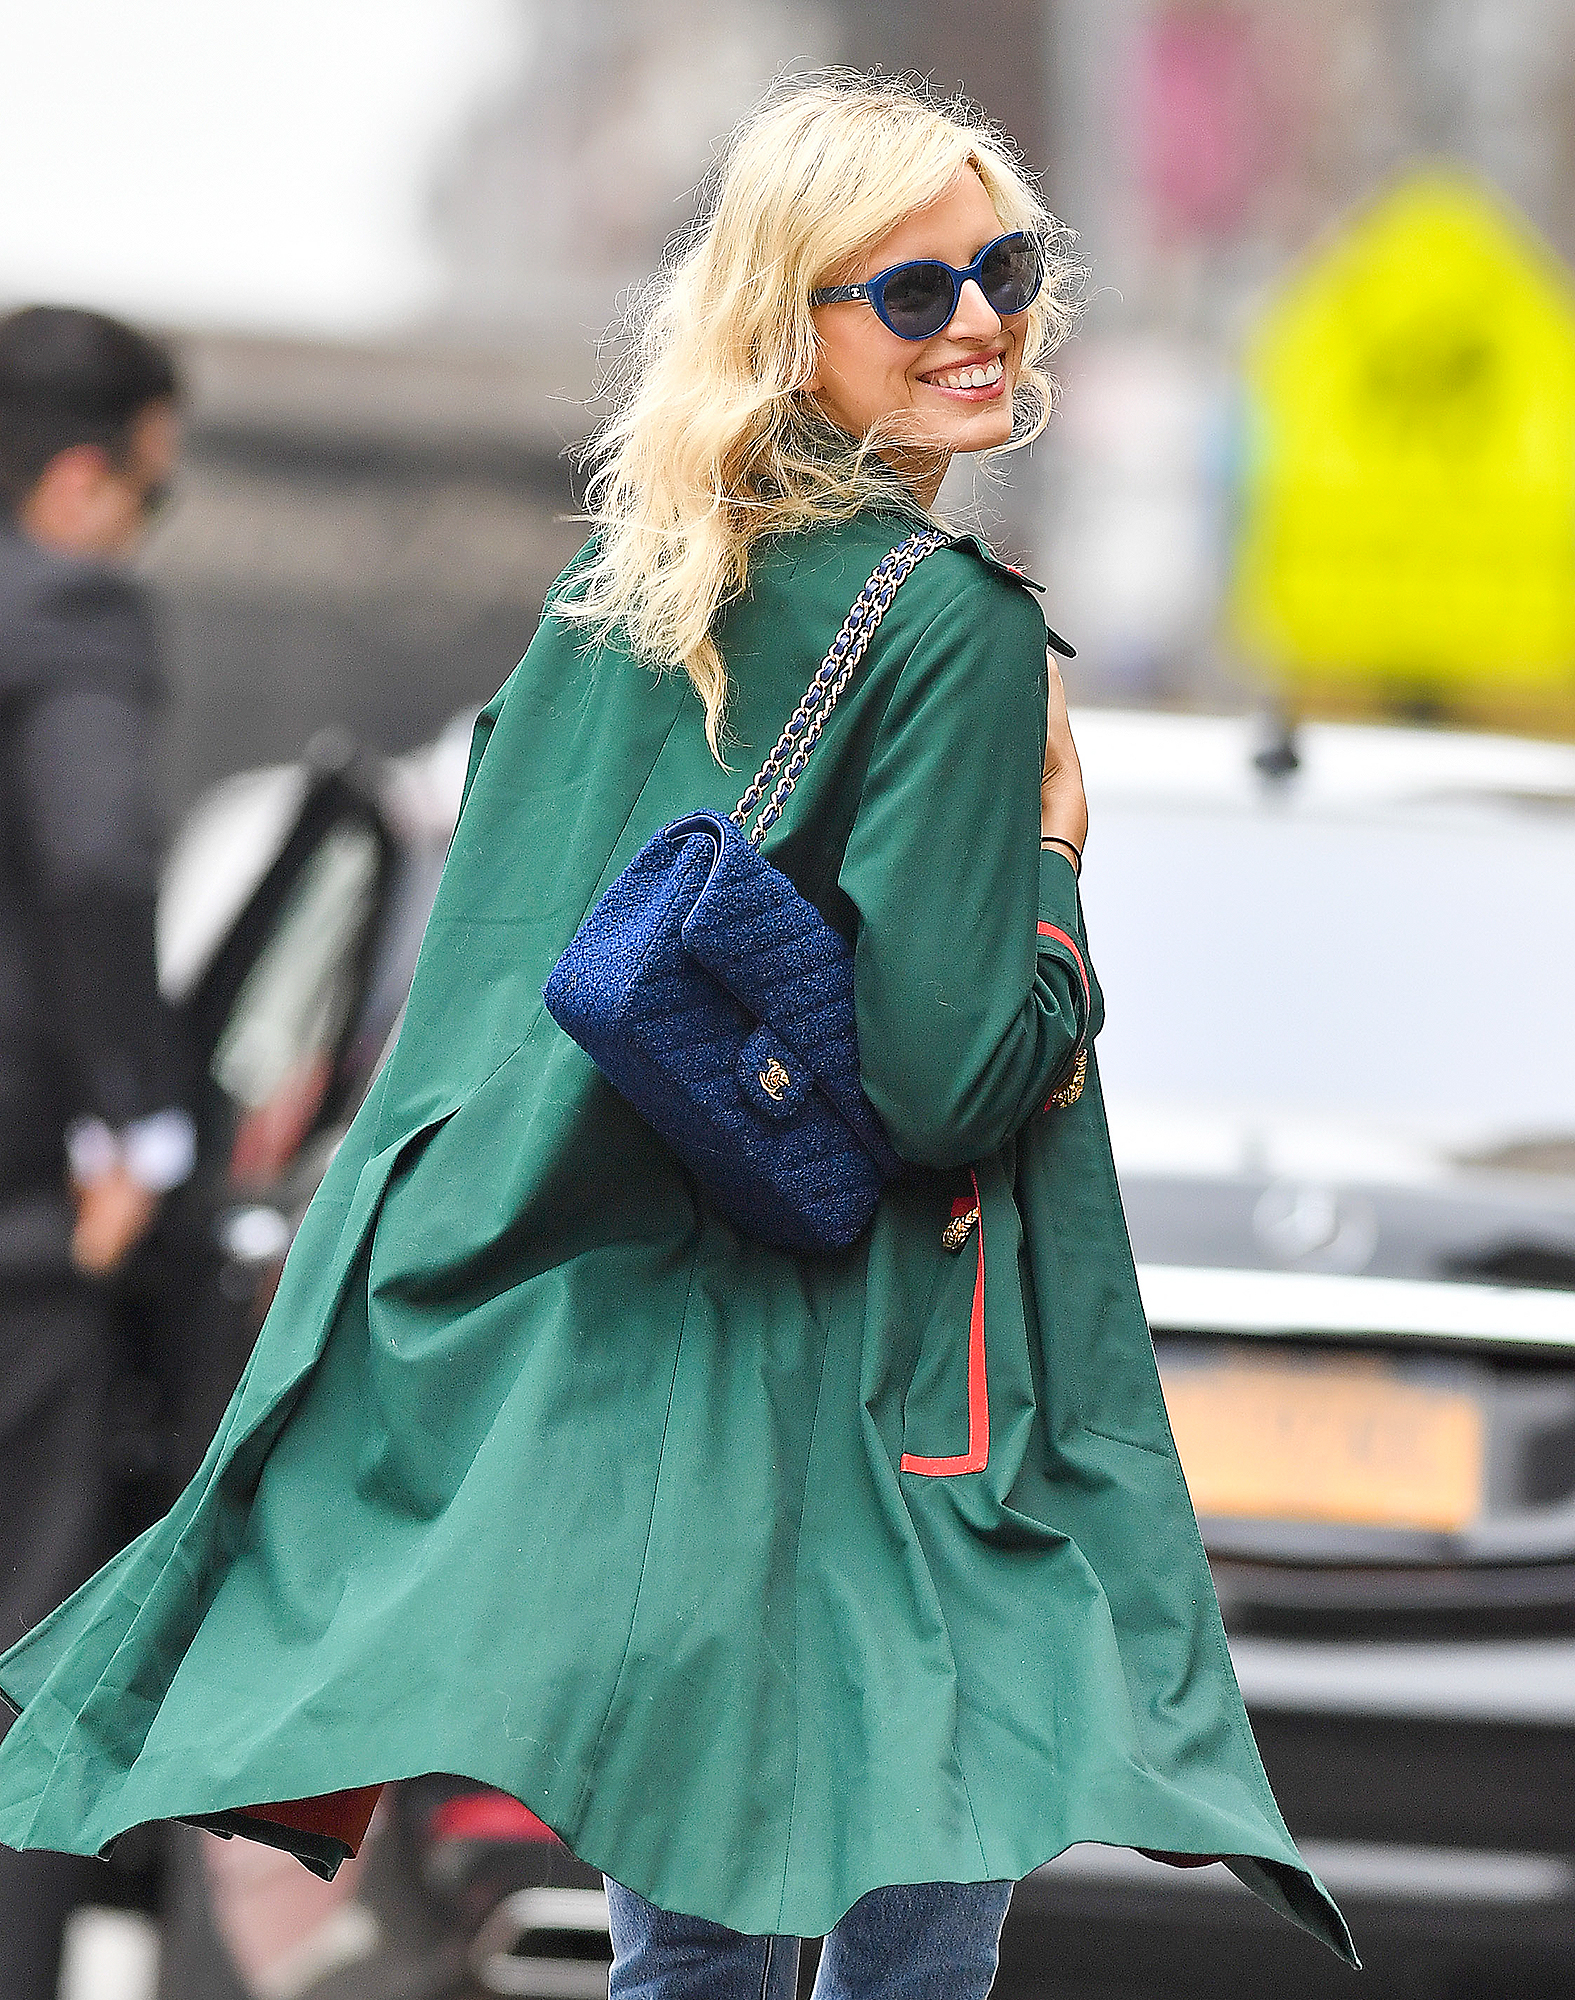 EXCLUSIVE: Karolina Kurkova wears a Forces of Nature shirt and carries a Chanel purse in New York City